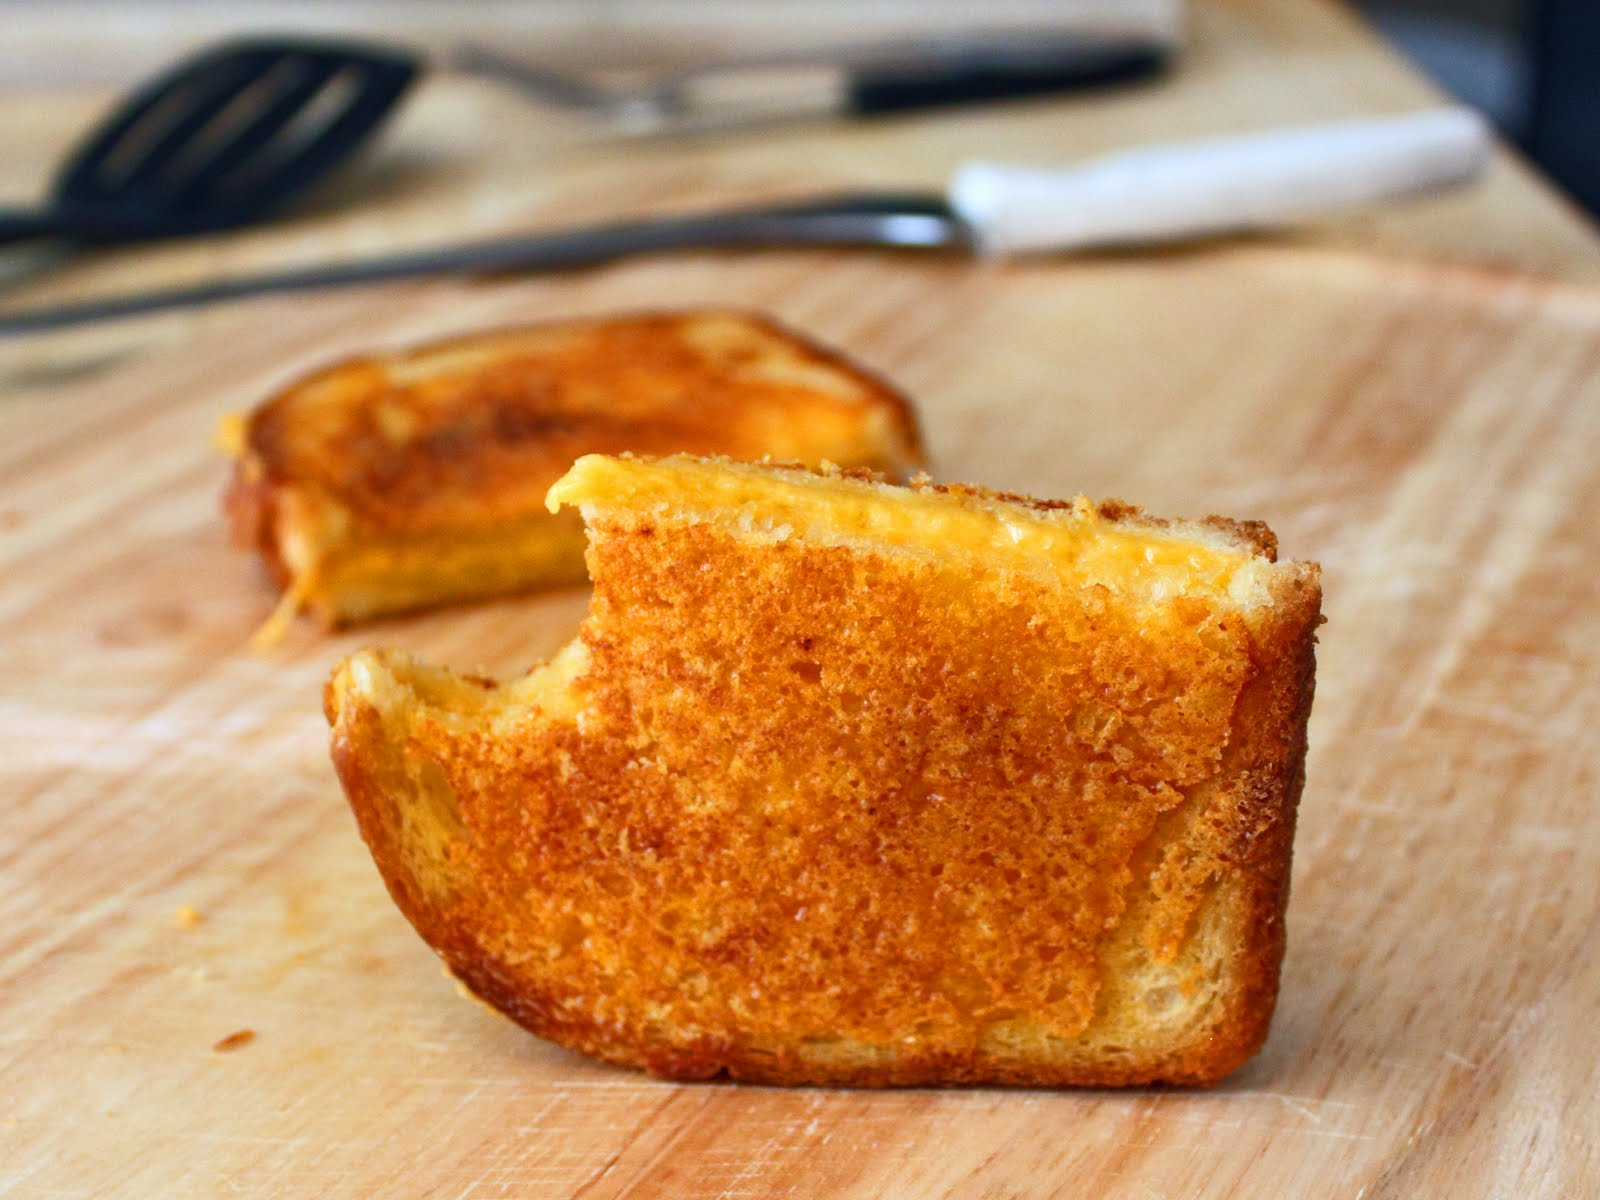 ... Cheese Sandwich – Warning: This Video May Give You the Munchies